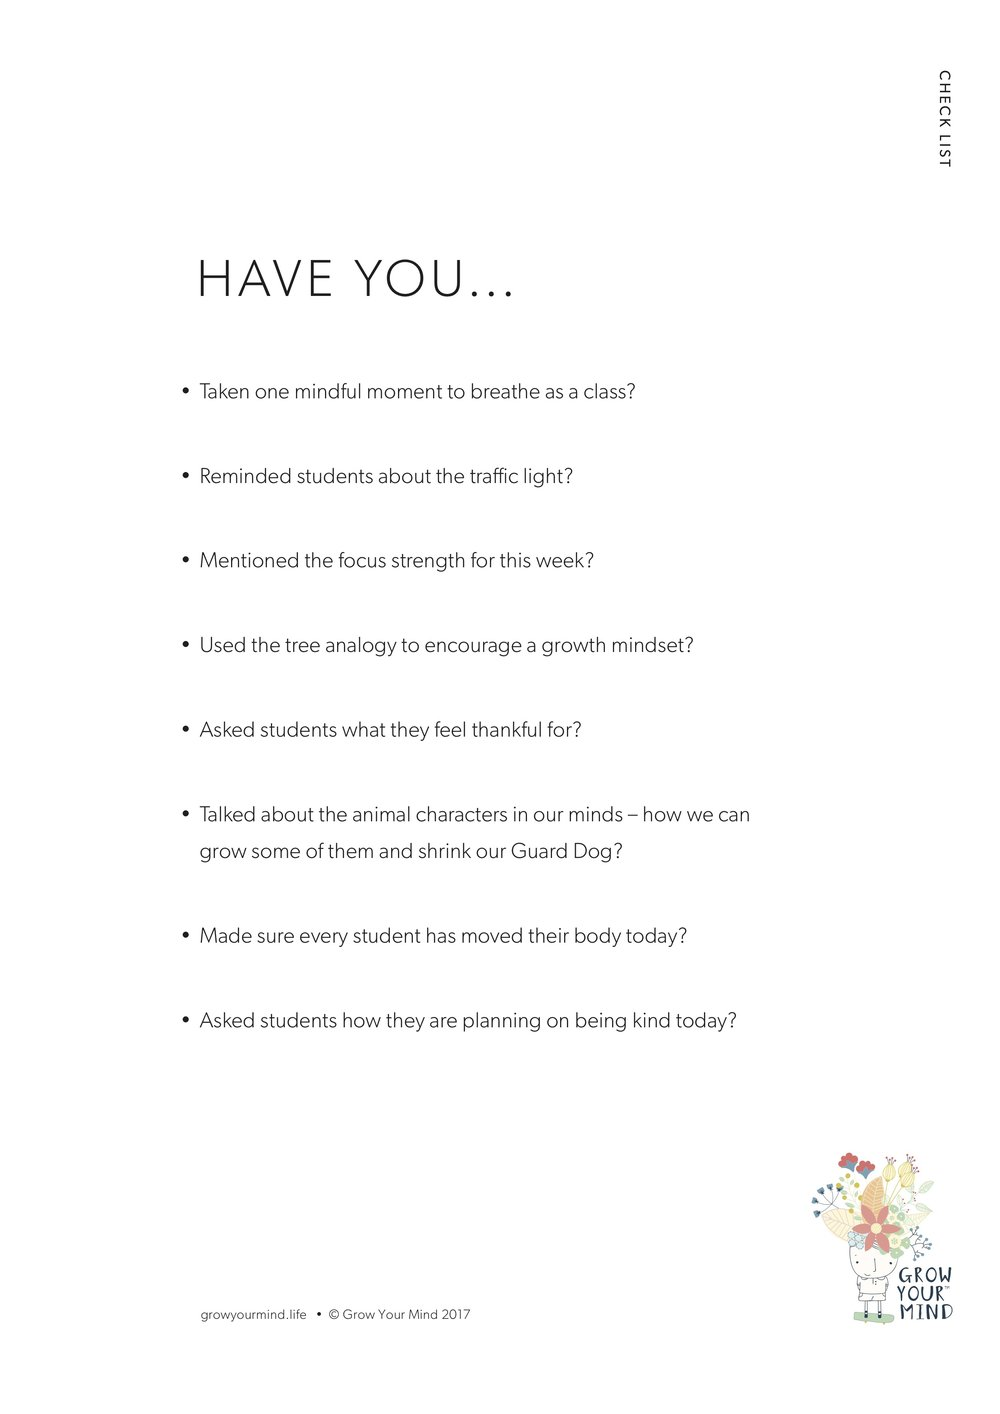 Checklist - For teachers to use as a guide to every day wellbeing in the classroom